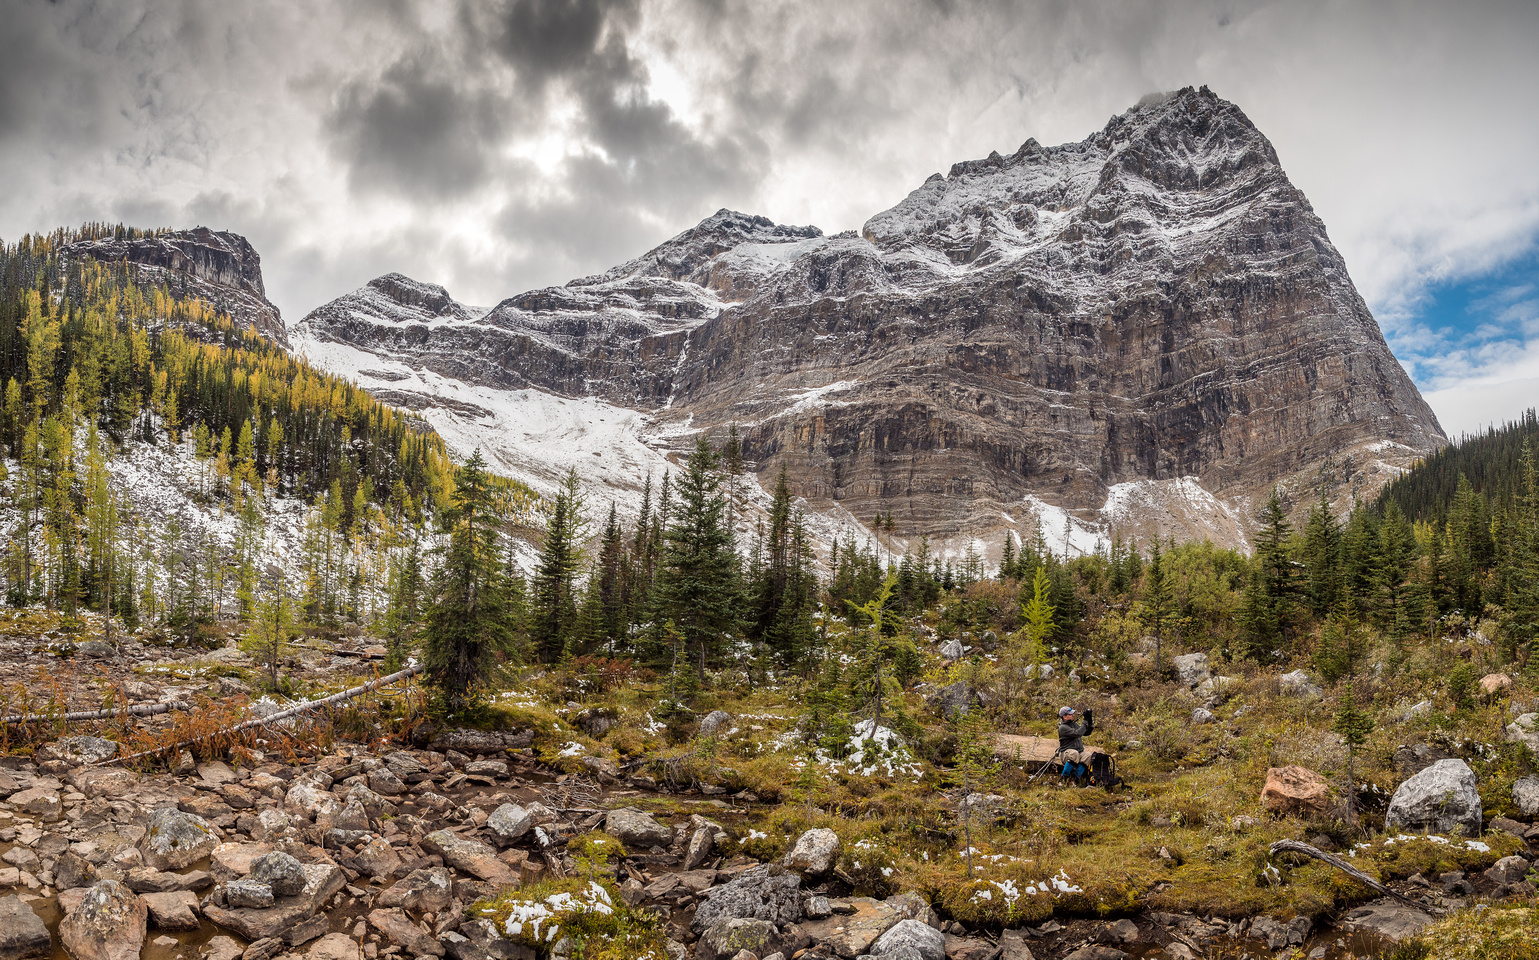 At the southern shore of the center Morning Glory Lake looking back at Odaray Mountain and Wietse enjoying a break.